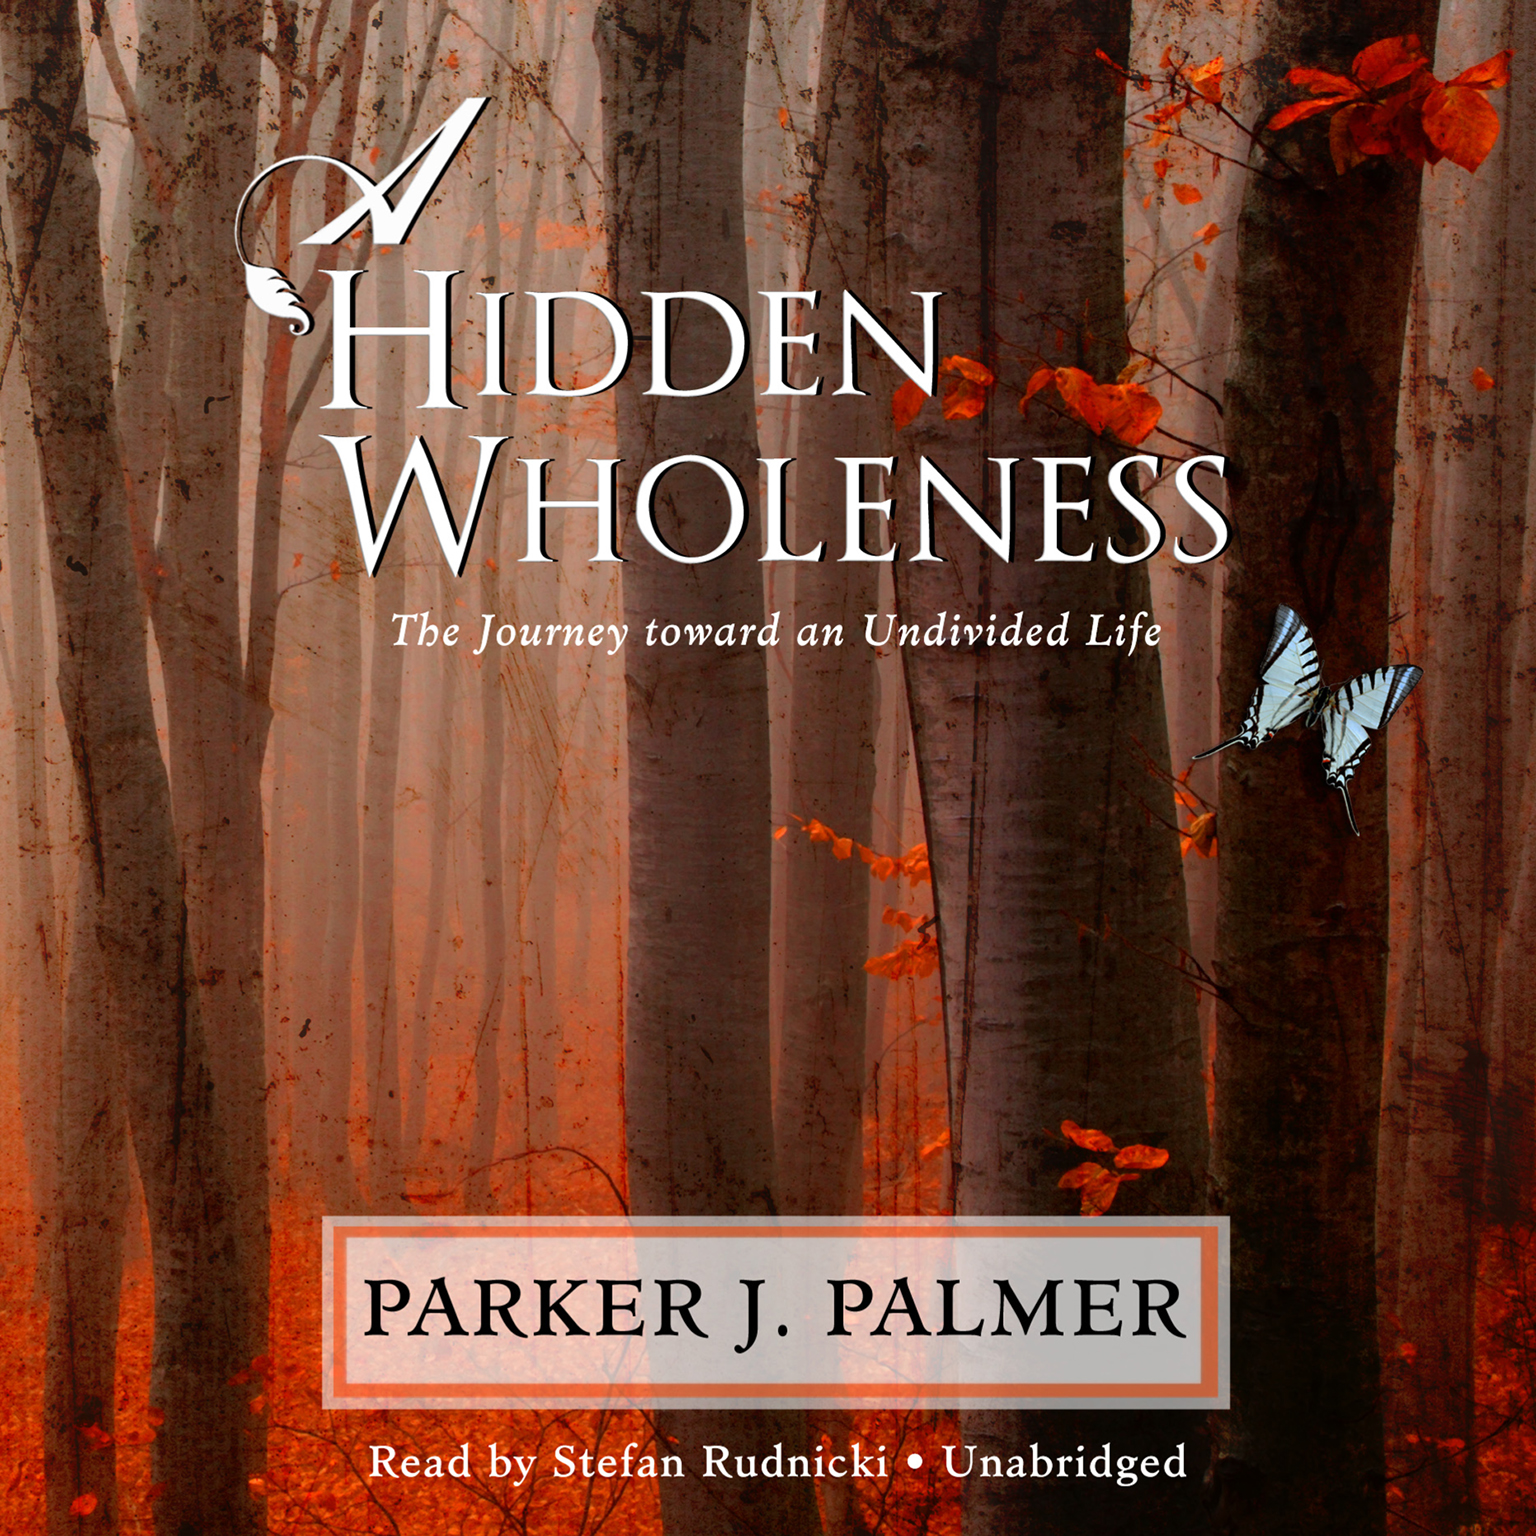 Printable A Hidden Wholeness: The Journey toward an Undivided Life Audiobook Cover Art